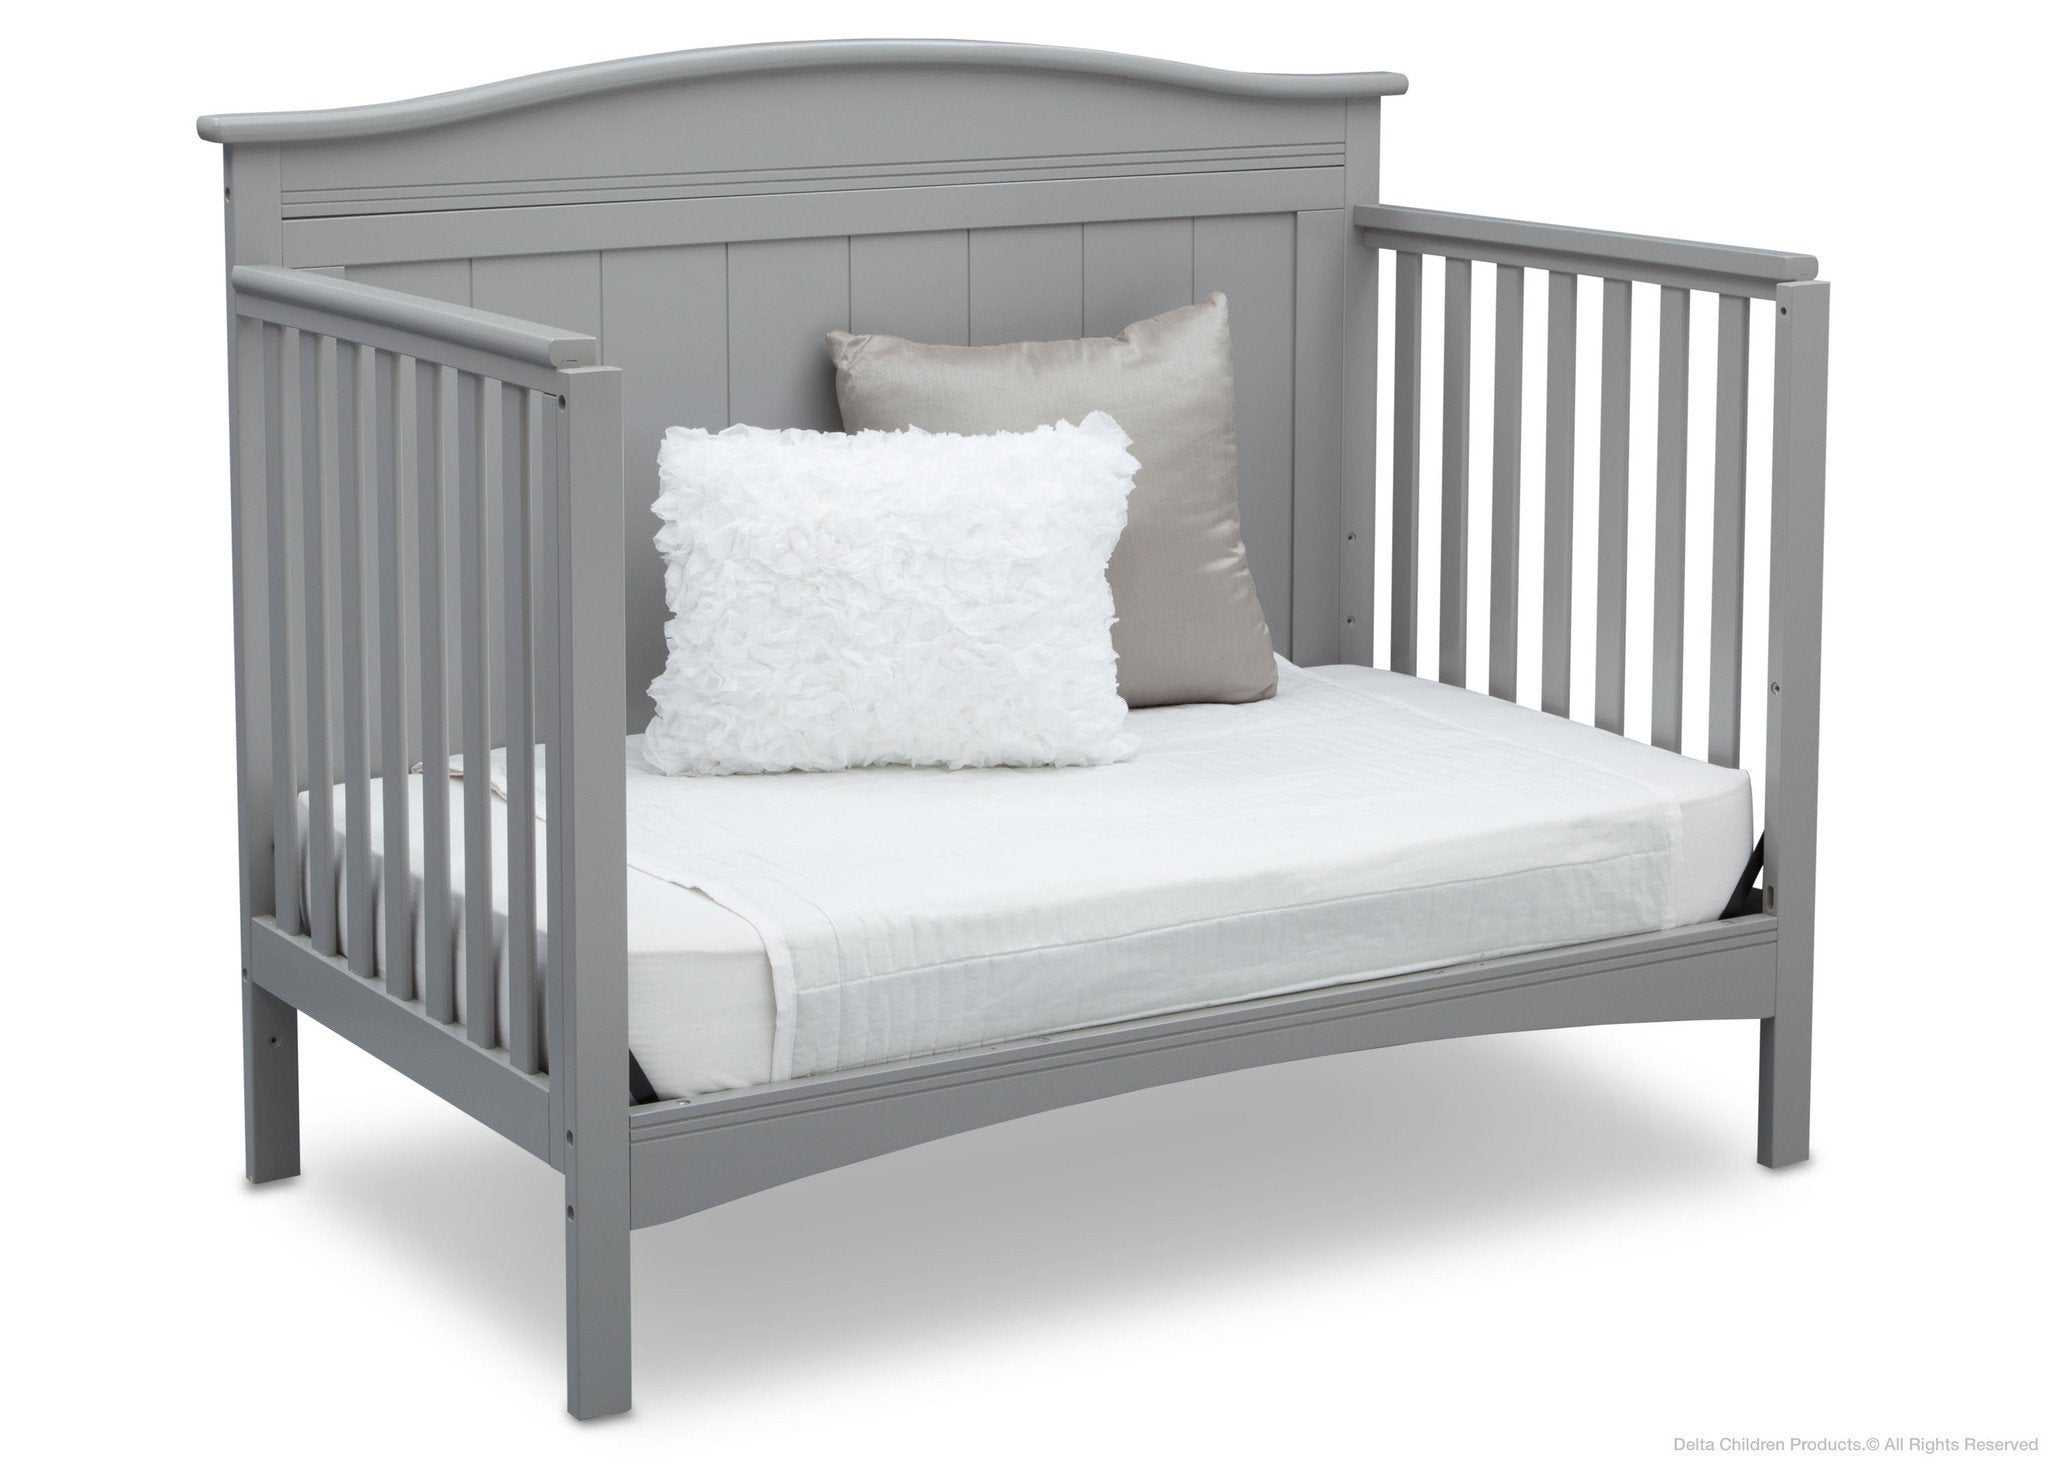 Delta Children Grey (026) Bennett 4-in-1 Crib Daybed Conversion Side View a5a